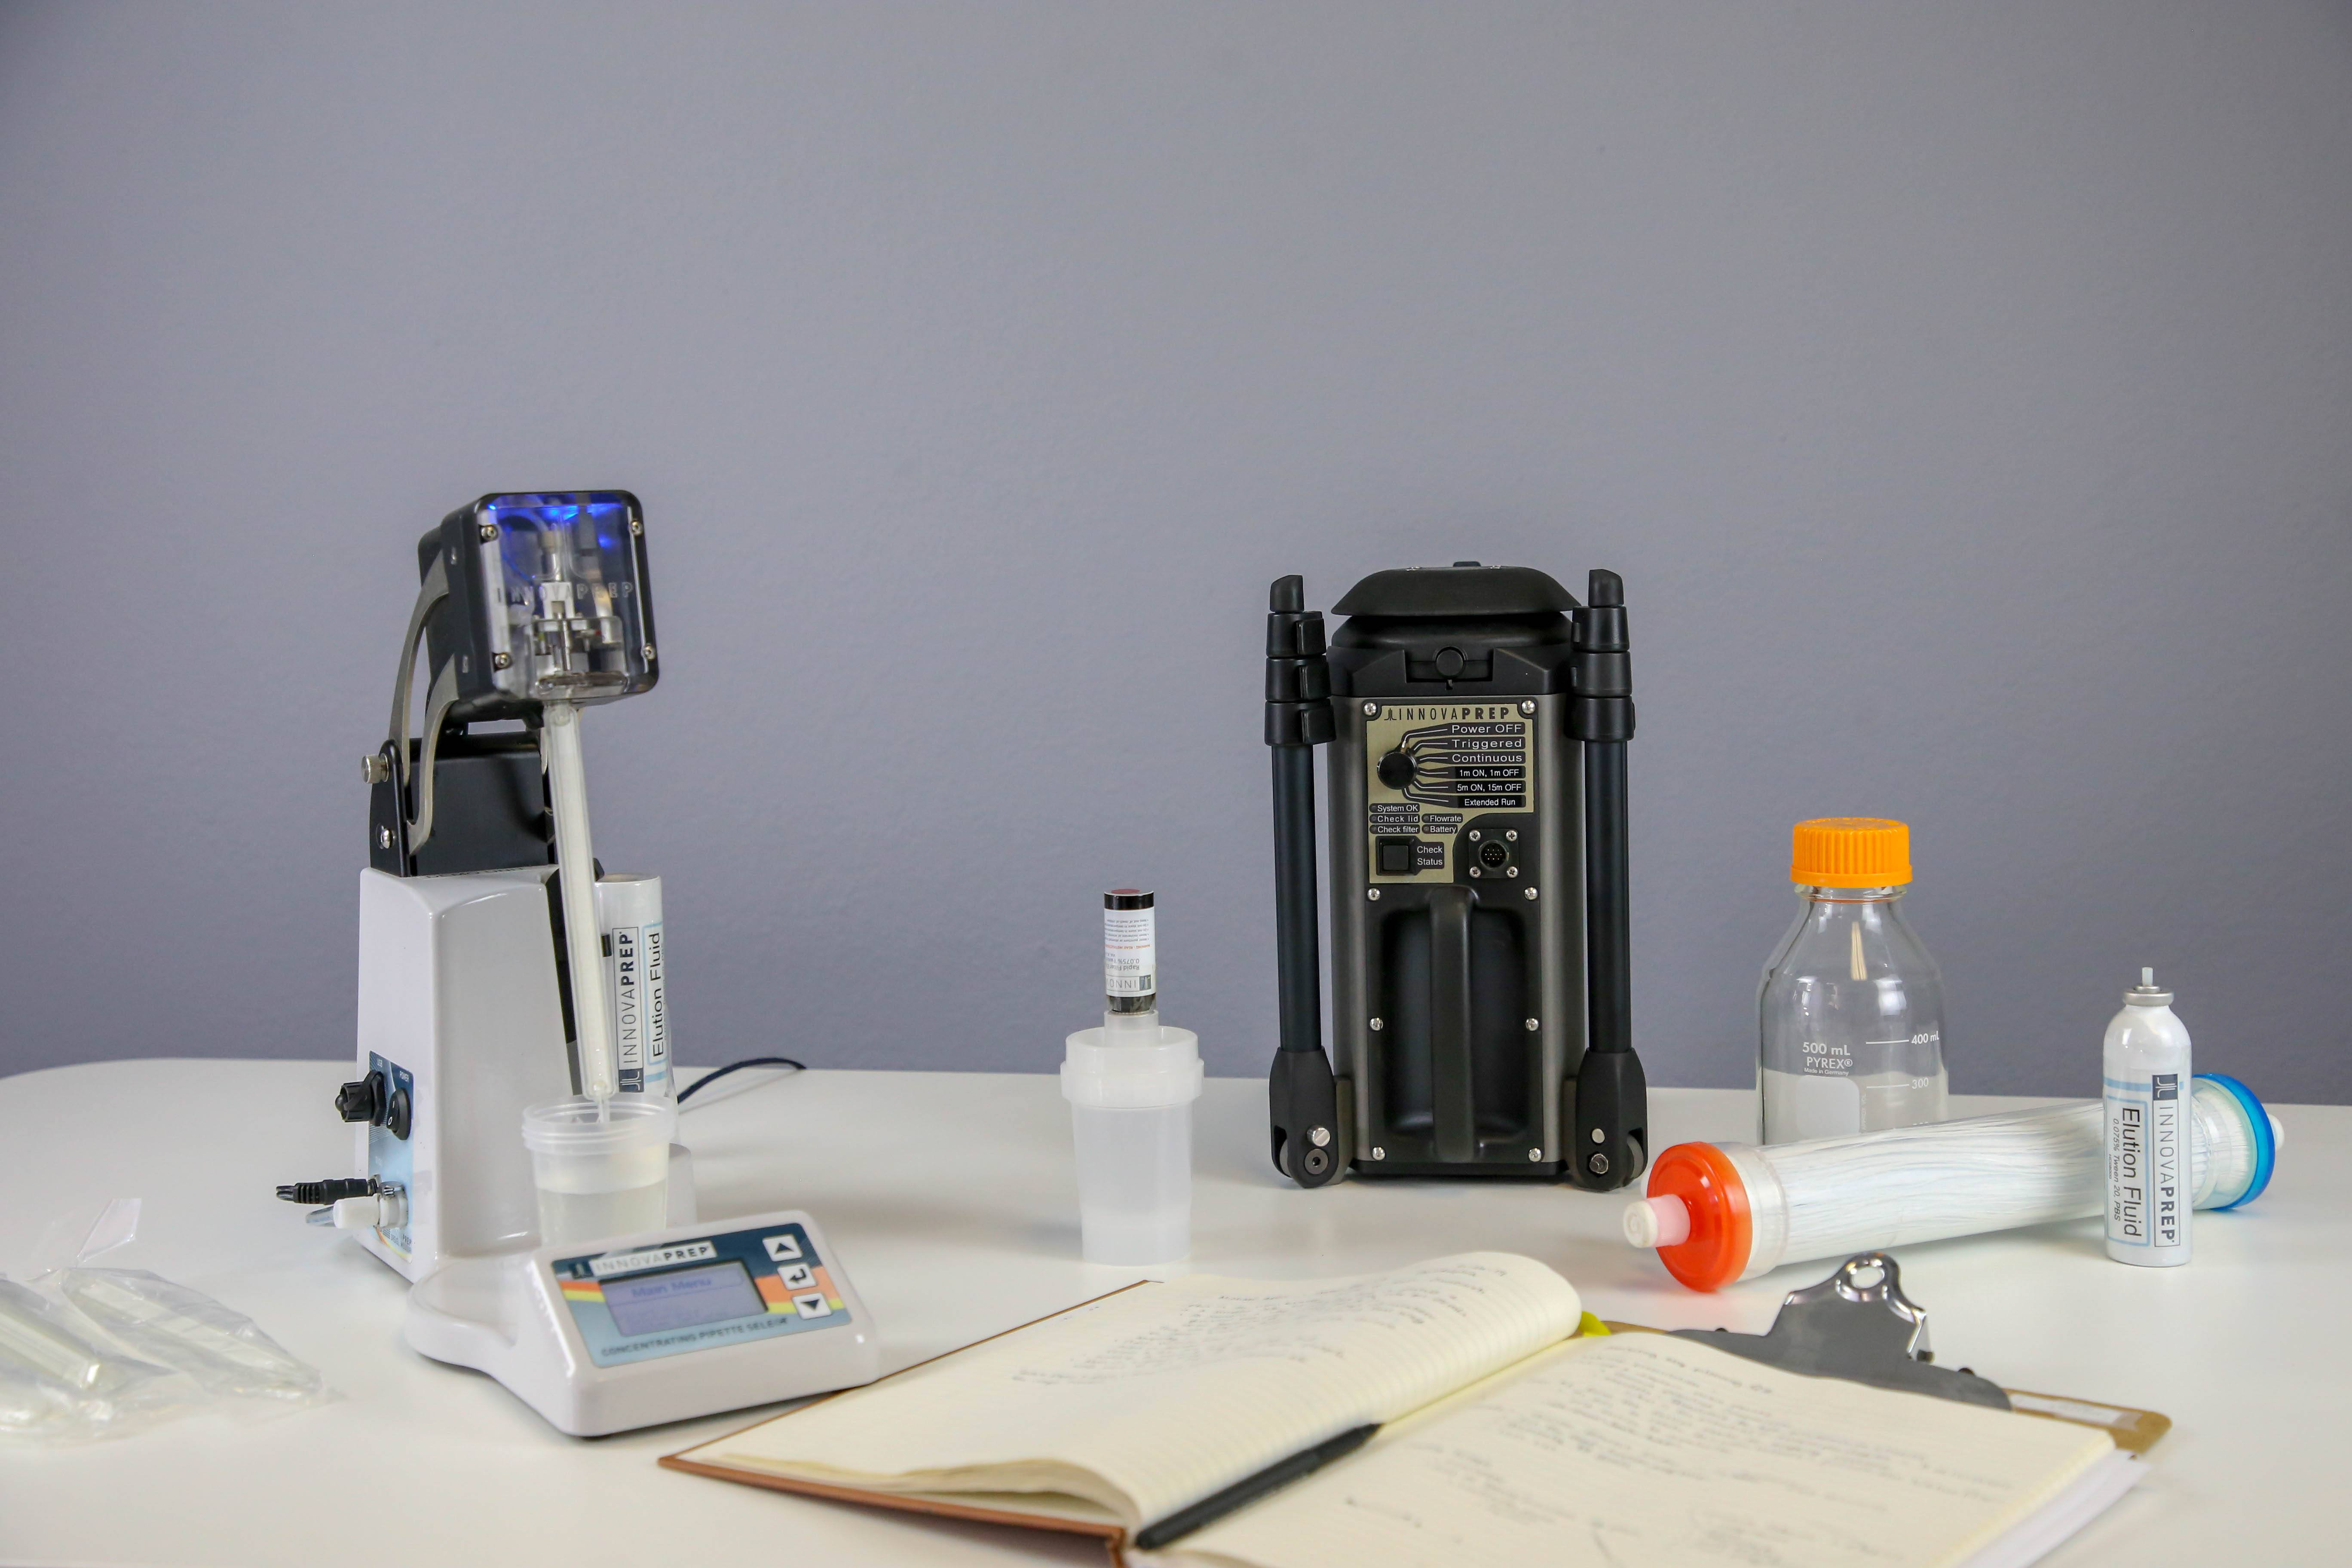 Bobcat, ACD200, ACD210, ACD220, ACD210Cub, ACD220Cub, ACD200Bobcat, Air Sampler, Air Collector, Air Concentration, LVC Kit, Large Volume Concentration, CP Select, CP150, Rapid Concentration, Rapid Liquid Sampler, Preanalytical Tool for Microbiology, Wet Foam Elution, Novel Elution Process, Patented Wet Foam Elution, Rapid Detection with Wet Foam Elution